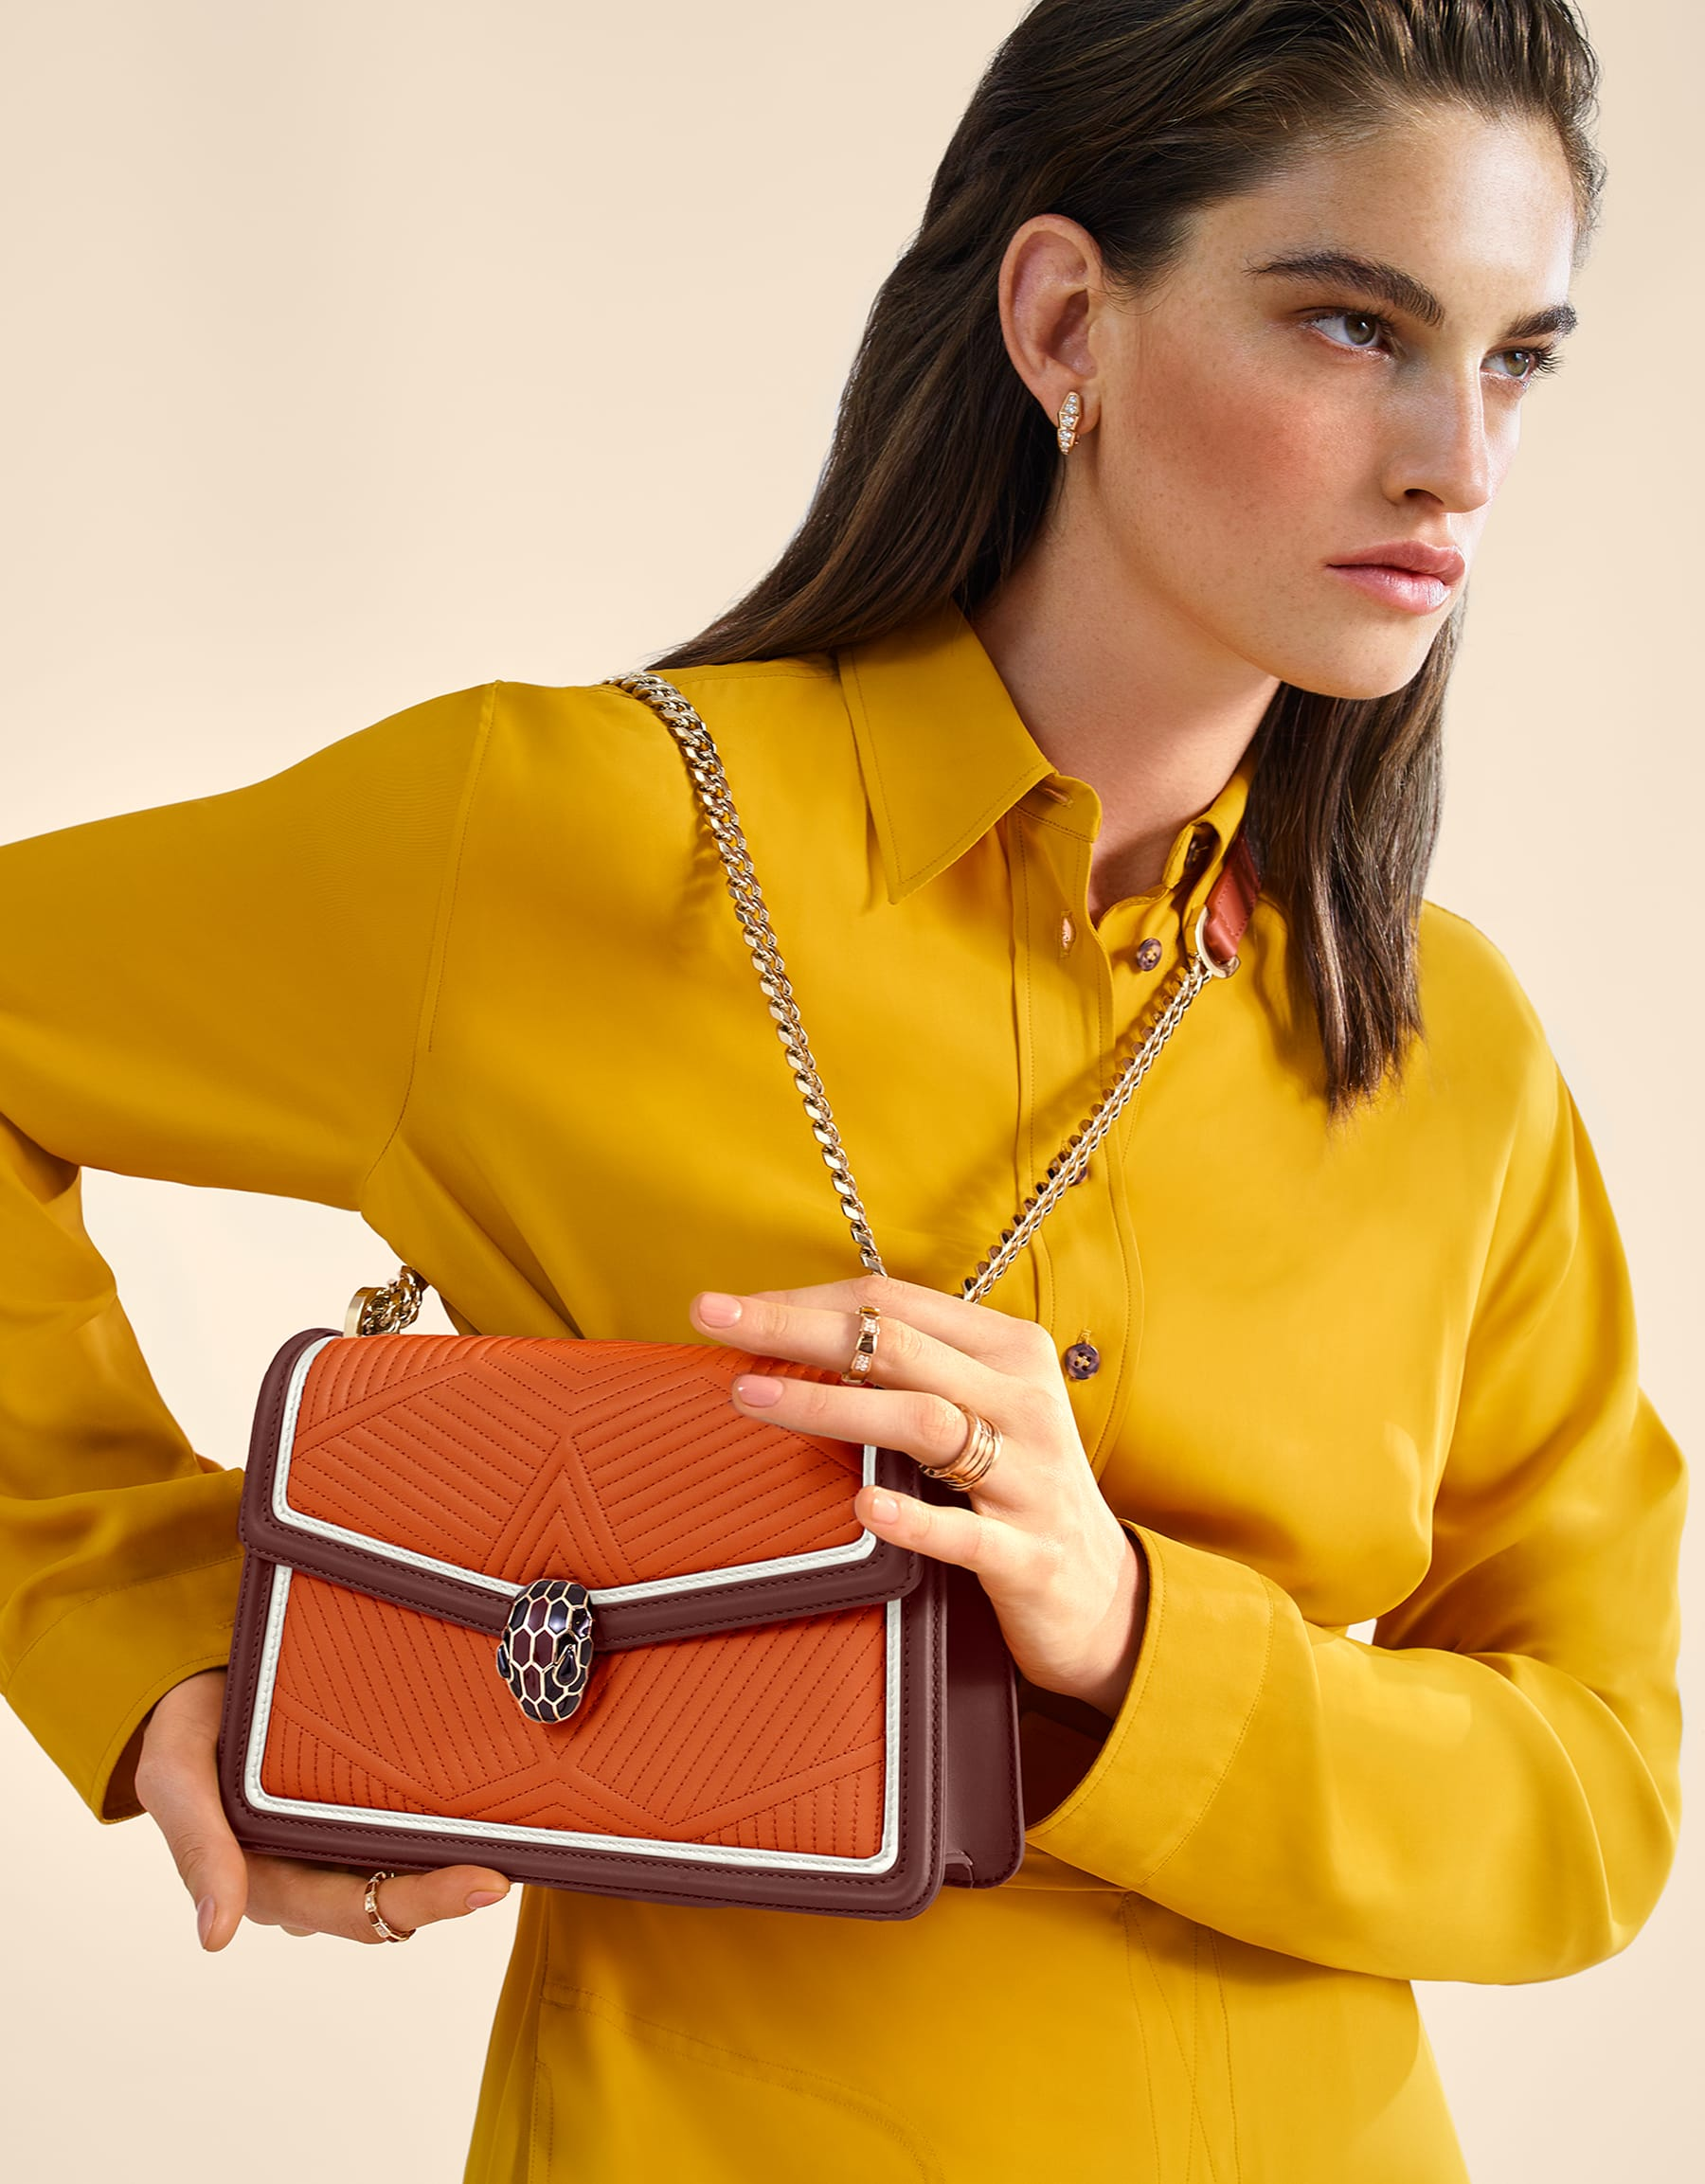 Serpenti Diamond Blast shoulder bag in imperial topaz quilted nappa leather with white agate and Roman garnet calf leather frames. Iconic snakehead closure in light gold plated brass embellished with Roman garnet and black enamel and black onyx eyes. 288827 image 5